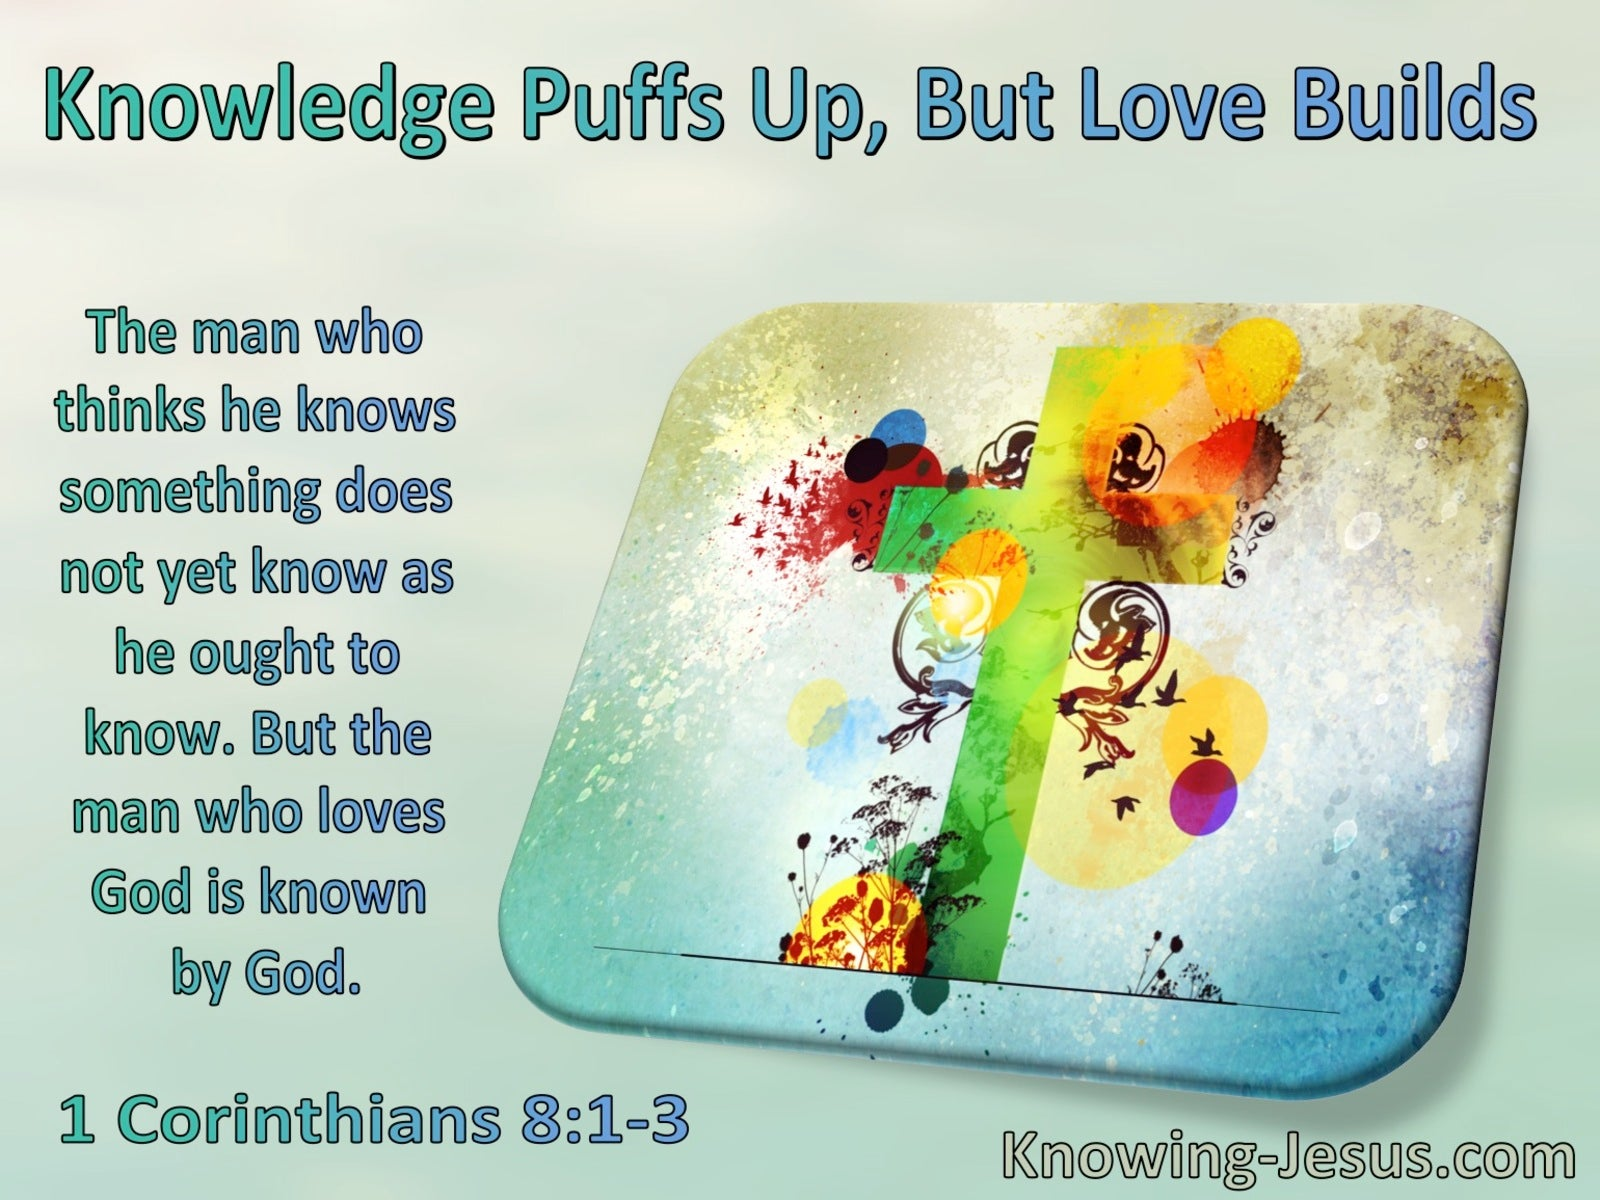 1 Corinthians 8:1:3 Knowledge Puffs Up But Love Builds (windows)10:30